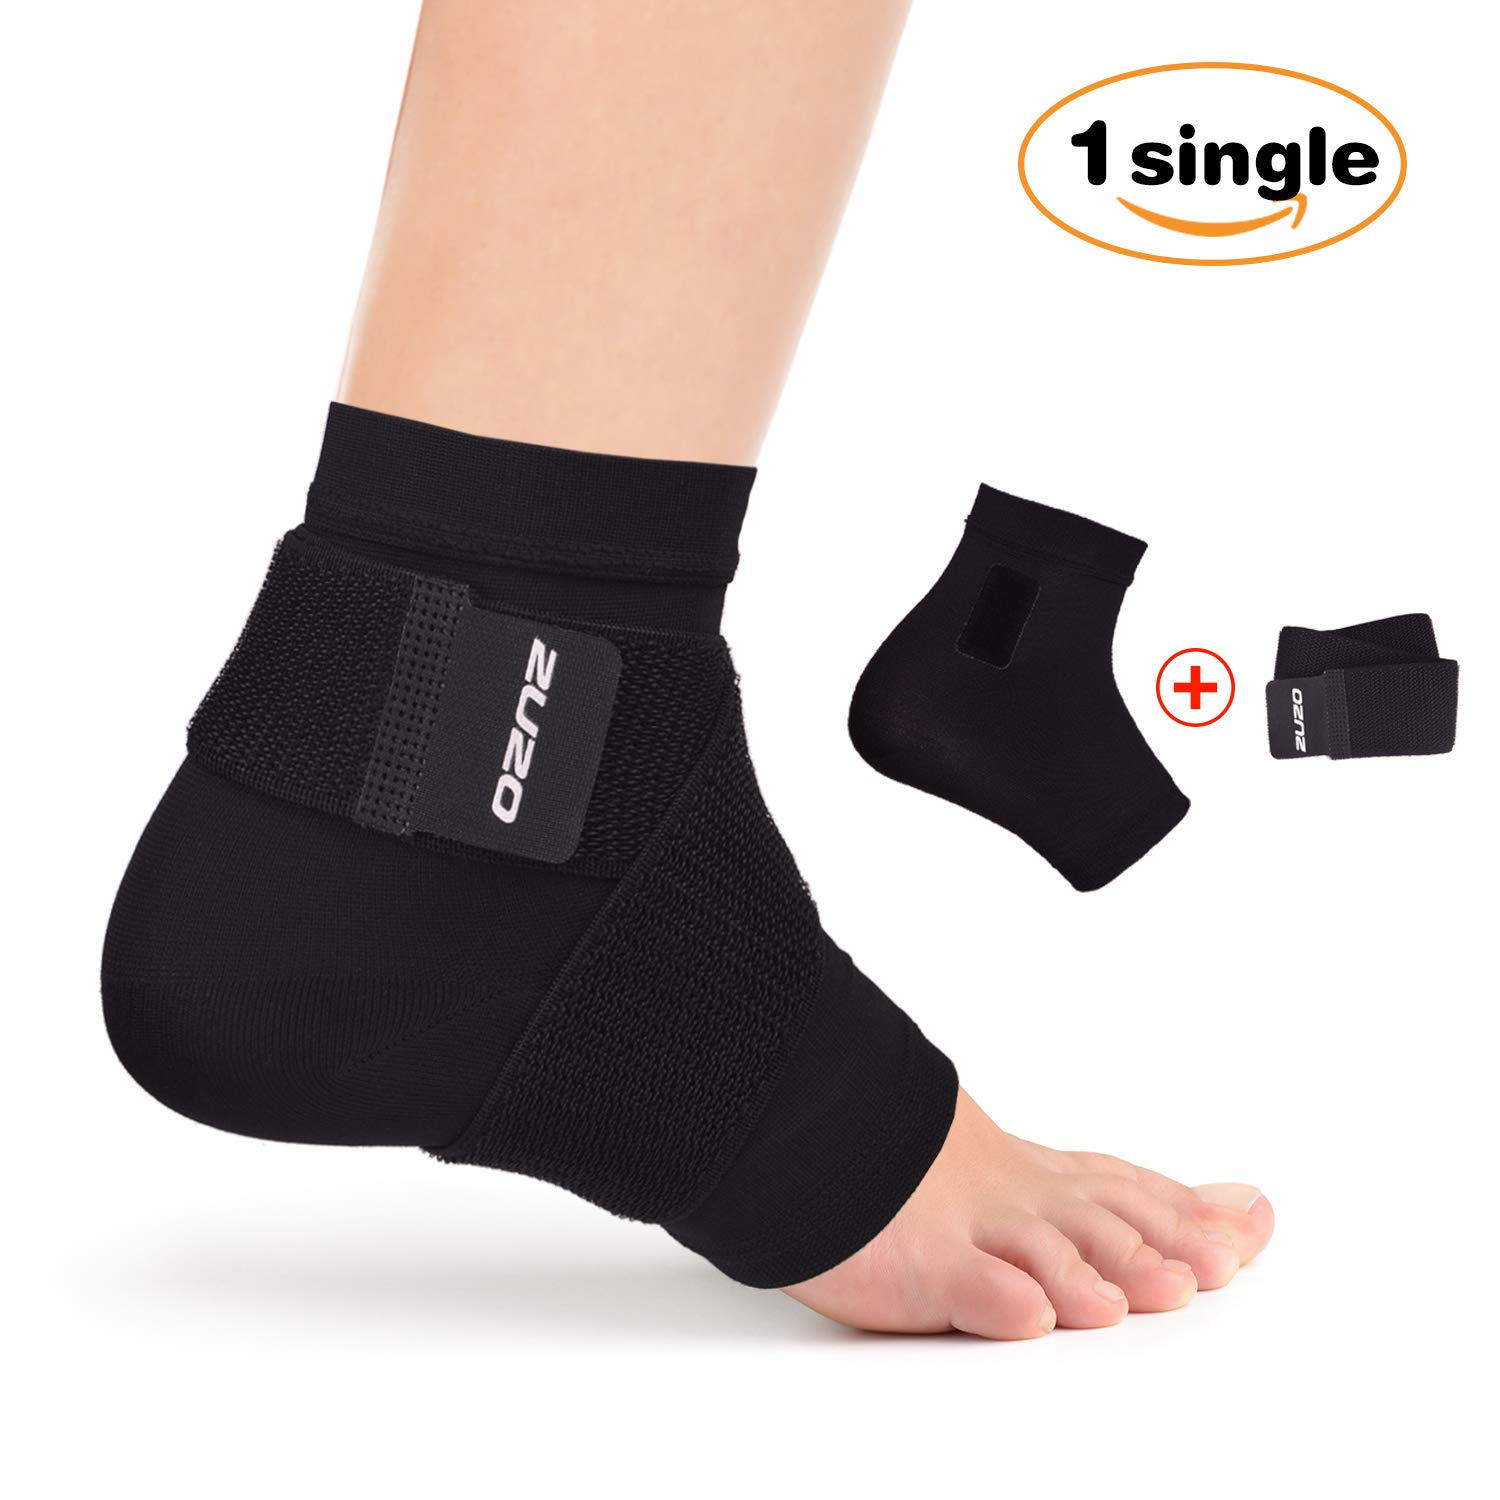 2U2O Adjustable Compression Ankle Support Brace - Breathable Ankle Sleeve for Men & Women- Pain Relief for Plantar Fasciitis,Ankle Swelling, Foot Pain- Reduce Ankle Sprain-M by 2U2O